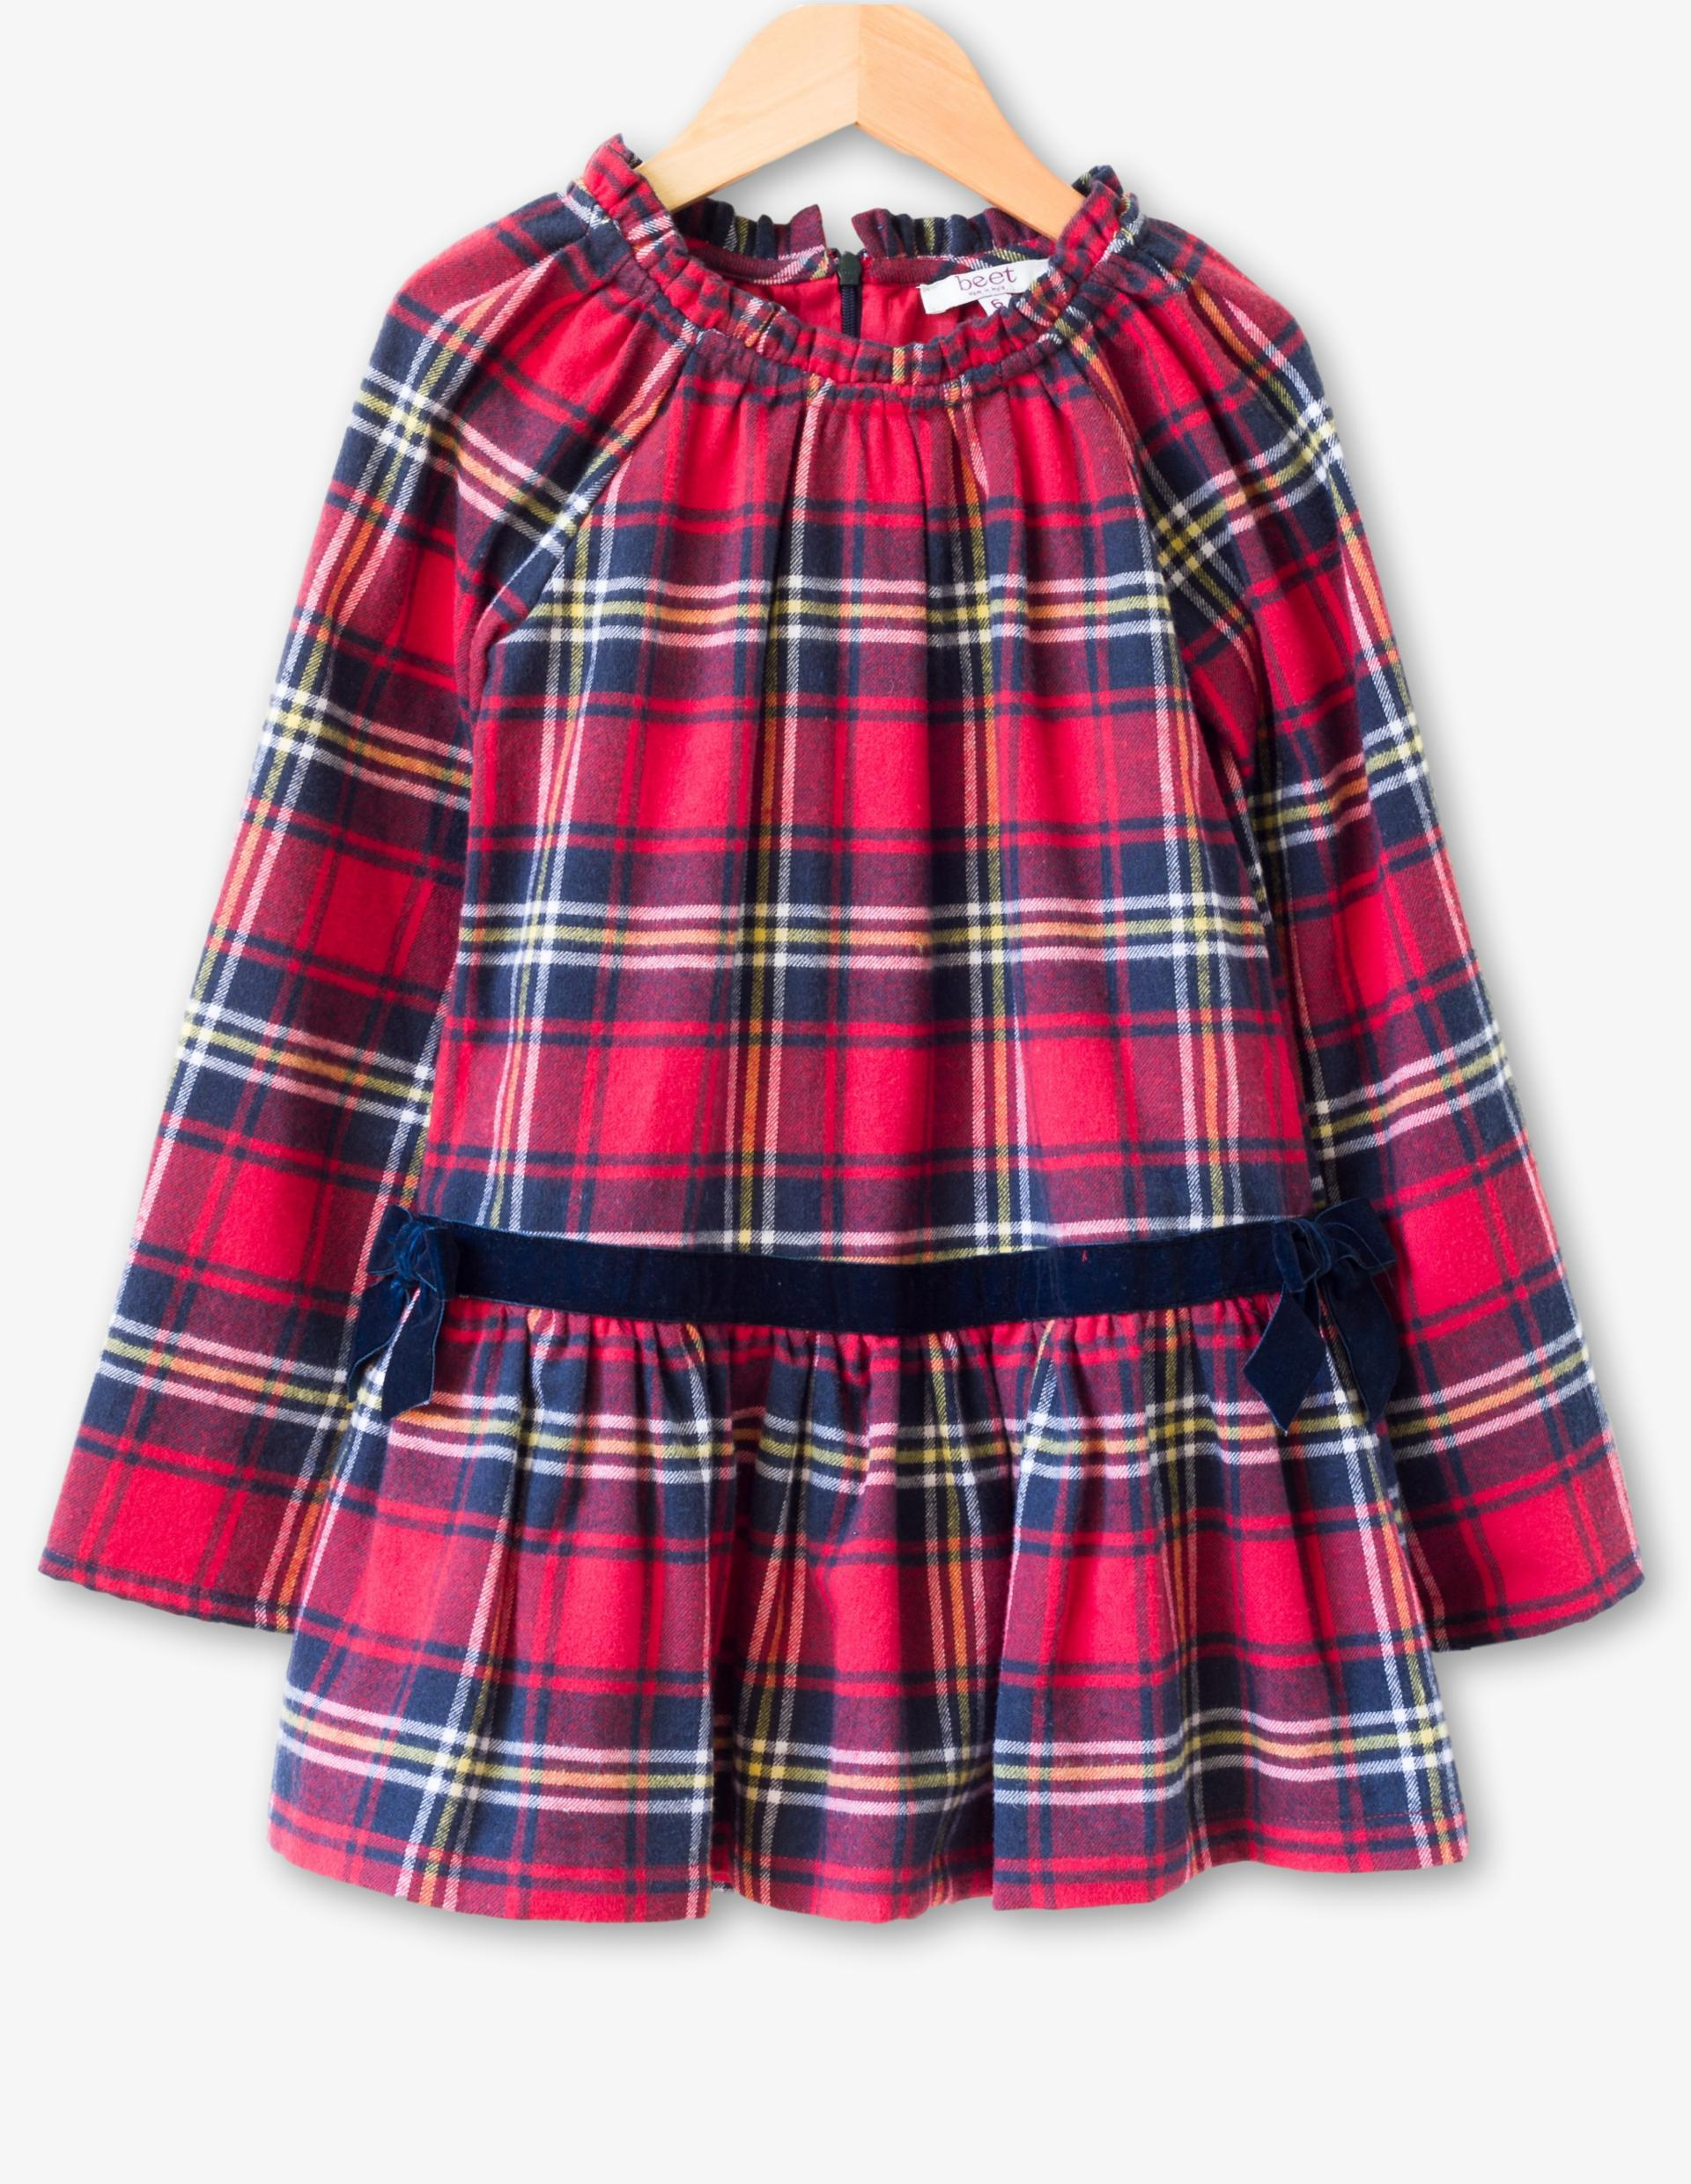 <p>If you want something more festive go for this Juniper Dress in Red Plaid from Beet World.{&nbsp;}{&nbsp;} This features delicate ruffles at the neck, long flared sleeves, relaxed low waist and velvet bow detail.{&nbsp;} Perfect for Santa pics! Price: $50 (Image: Beet World )</p><p></p>